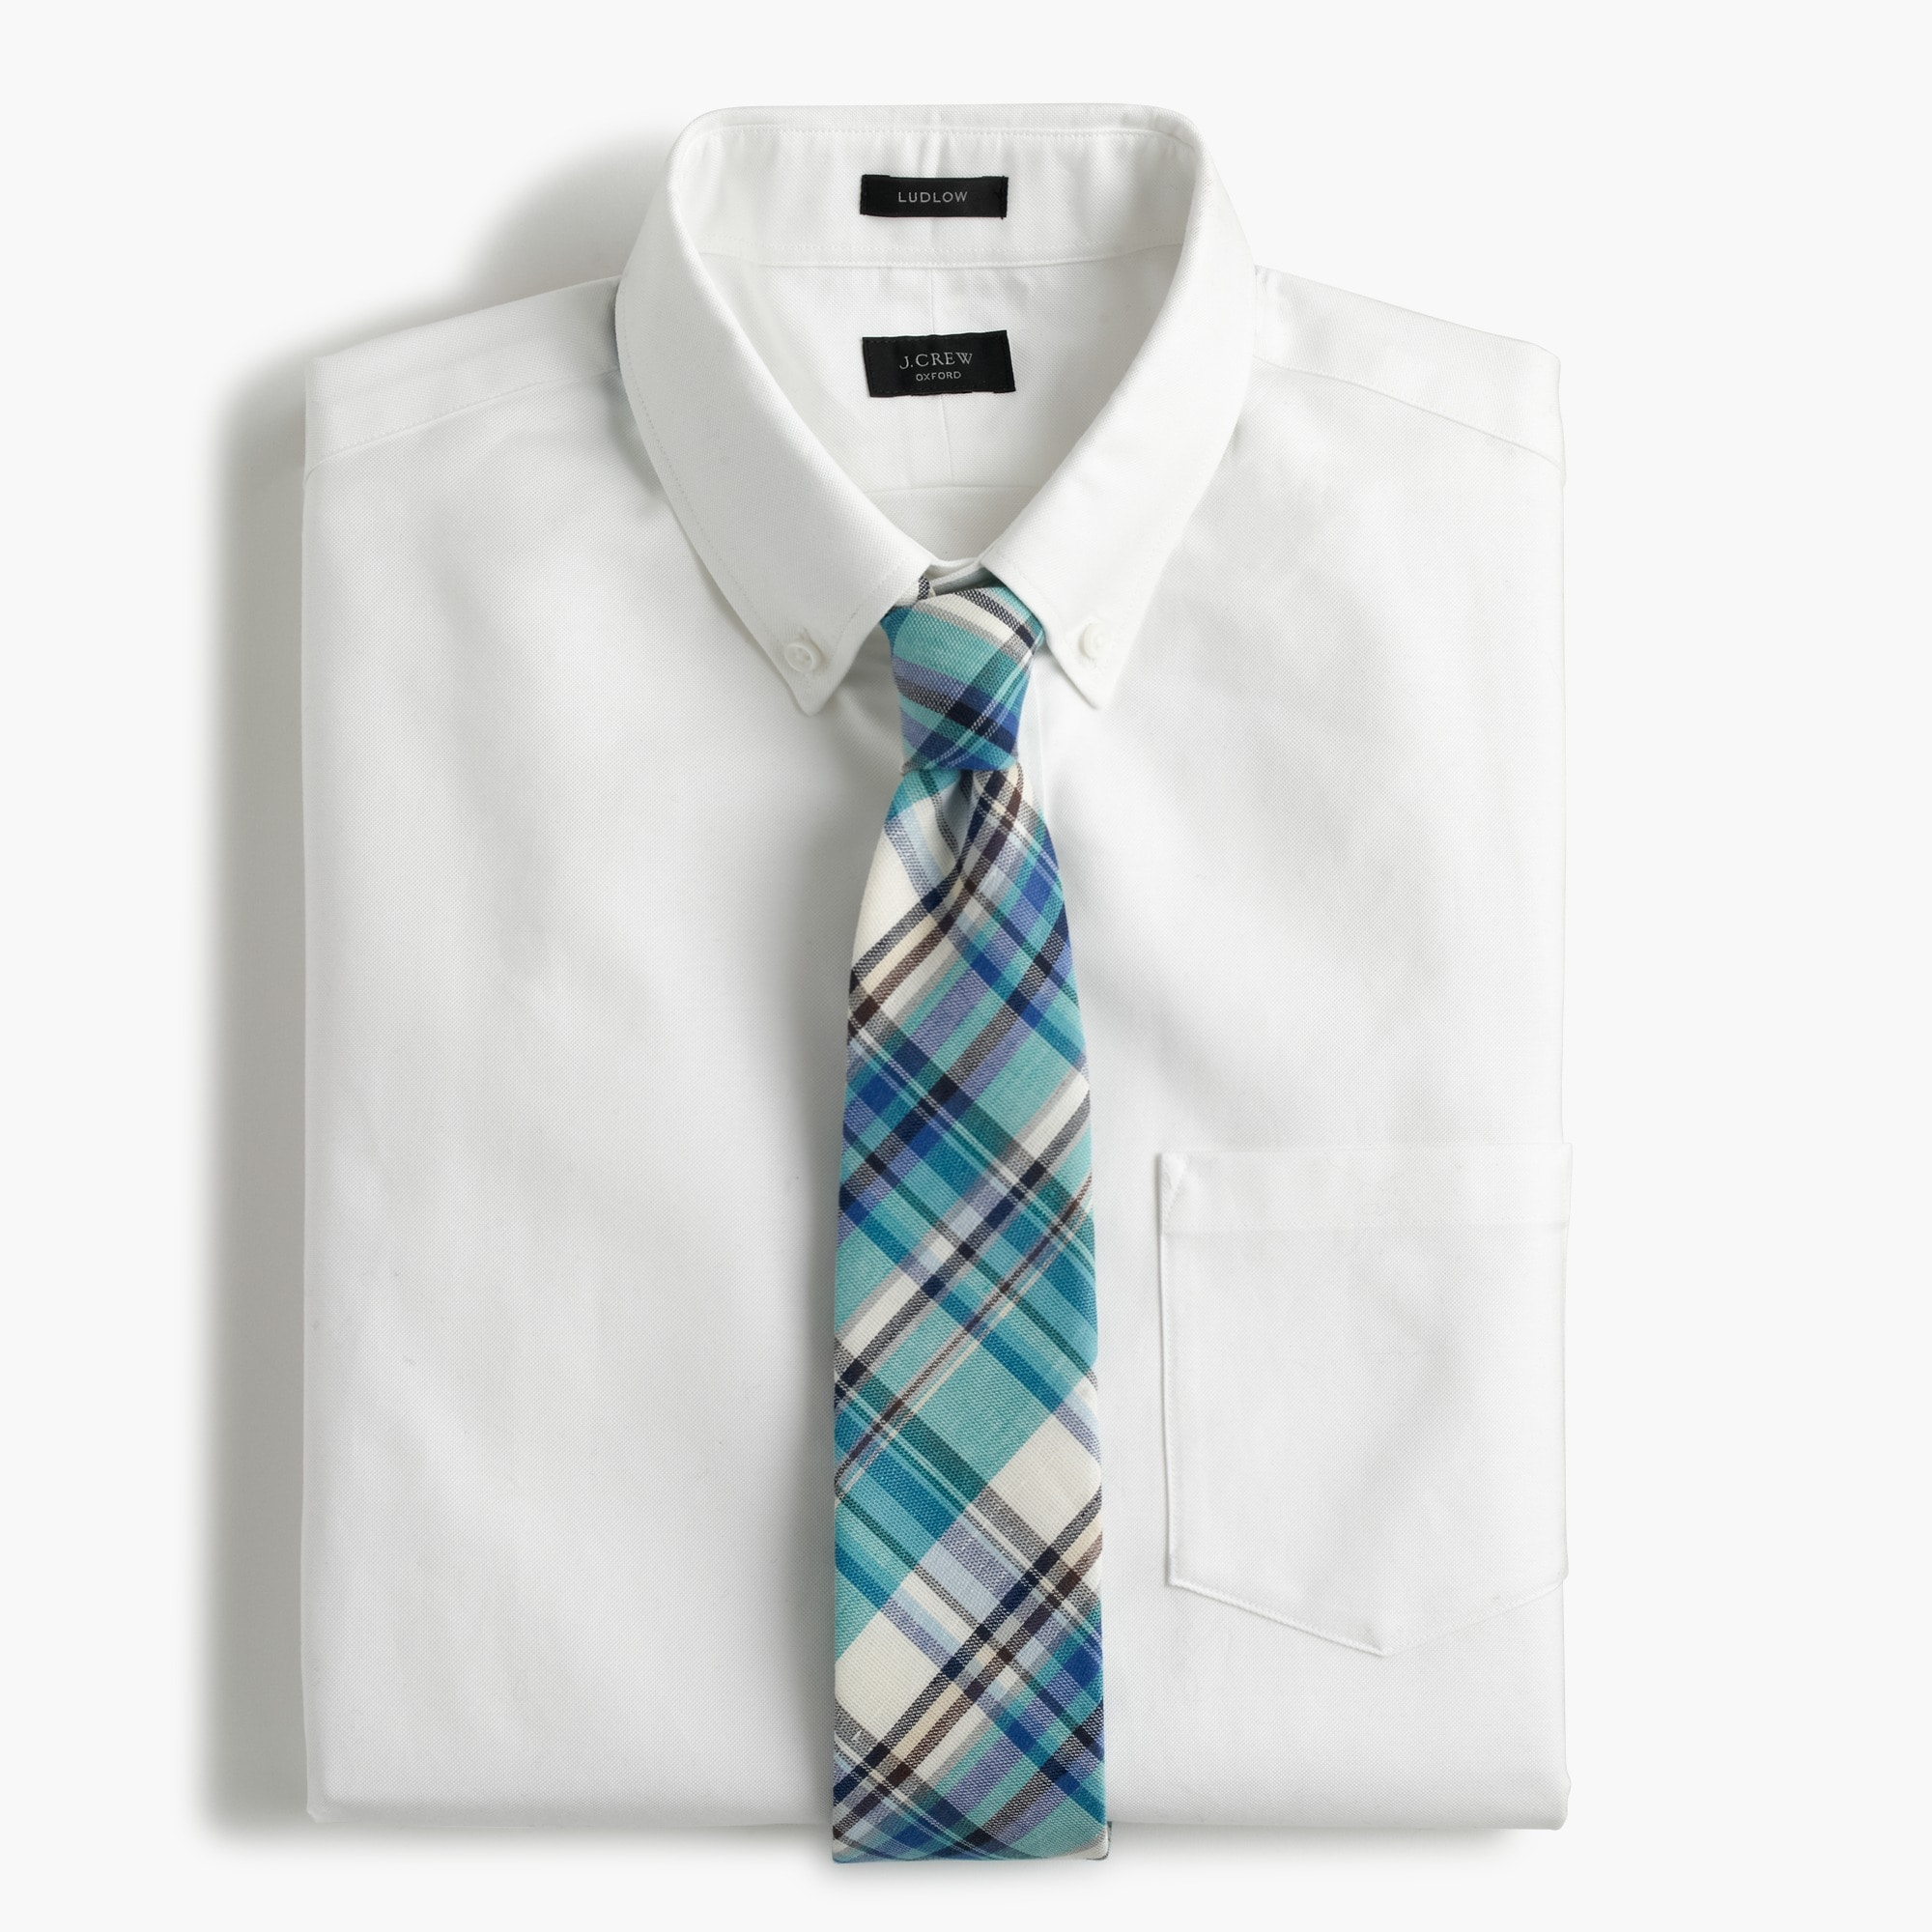 Image 2 for Ludlow Slim-fit cotton oxford shirt in white